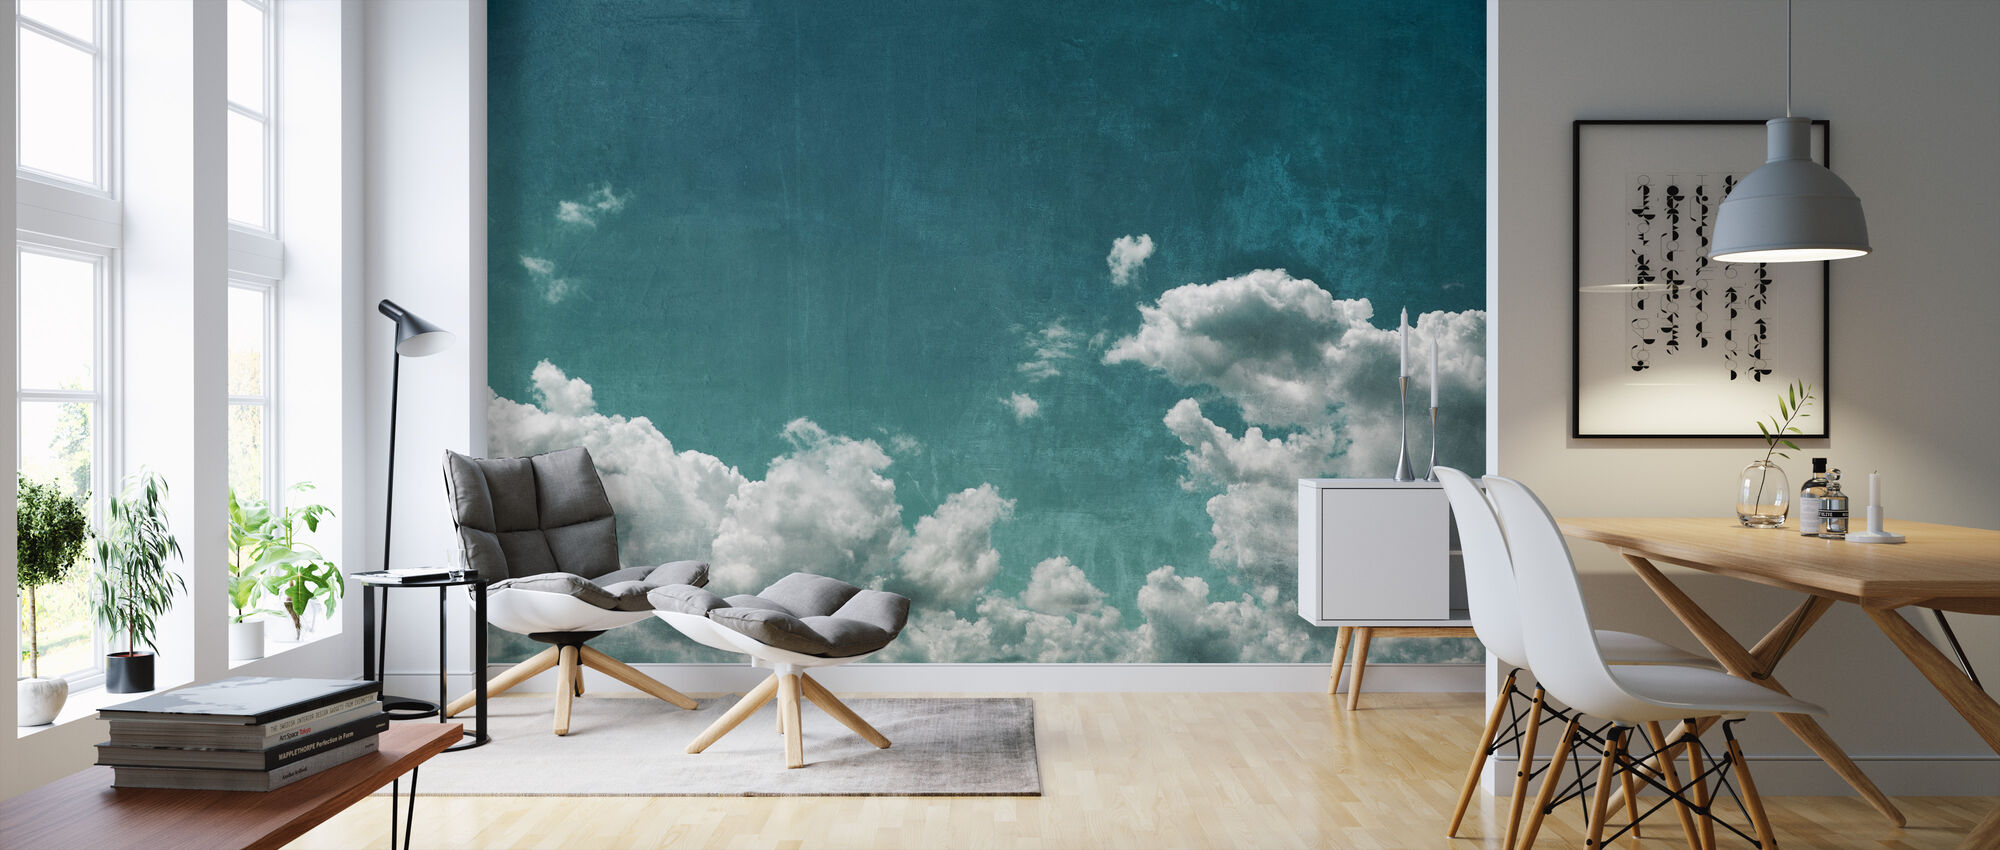 Textured Cloudy Sky - Wallpaper - Living Room